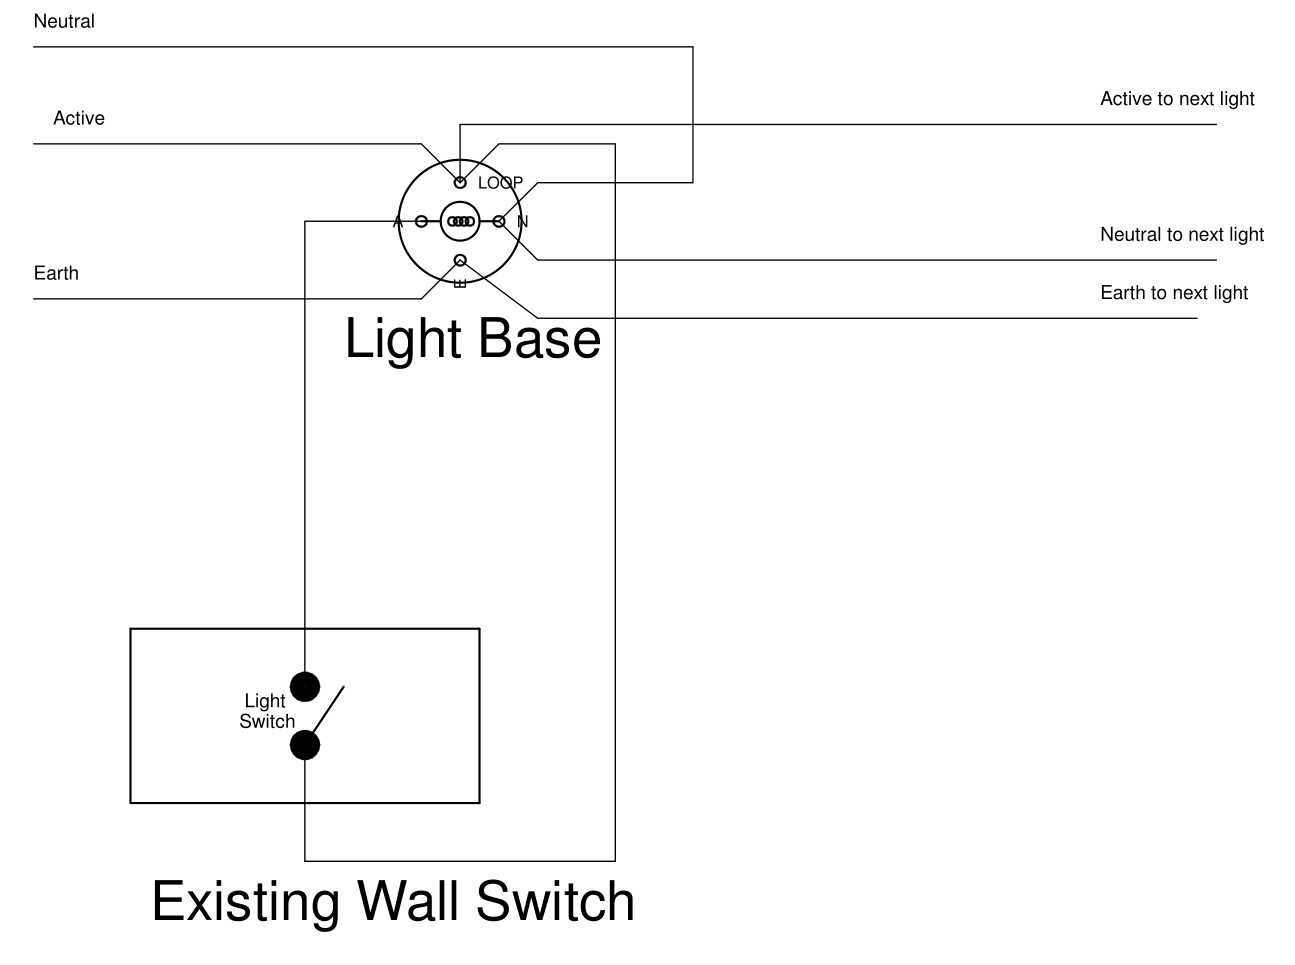 Retrofit Lights With Remote Control - Existing Wall Switches Keep ...